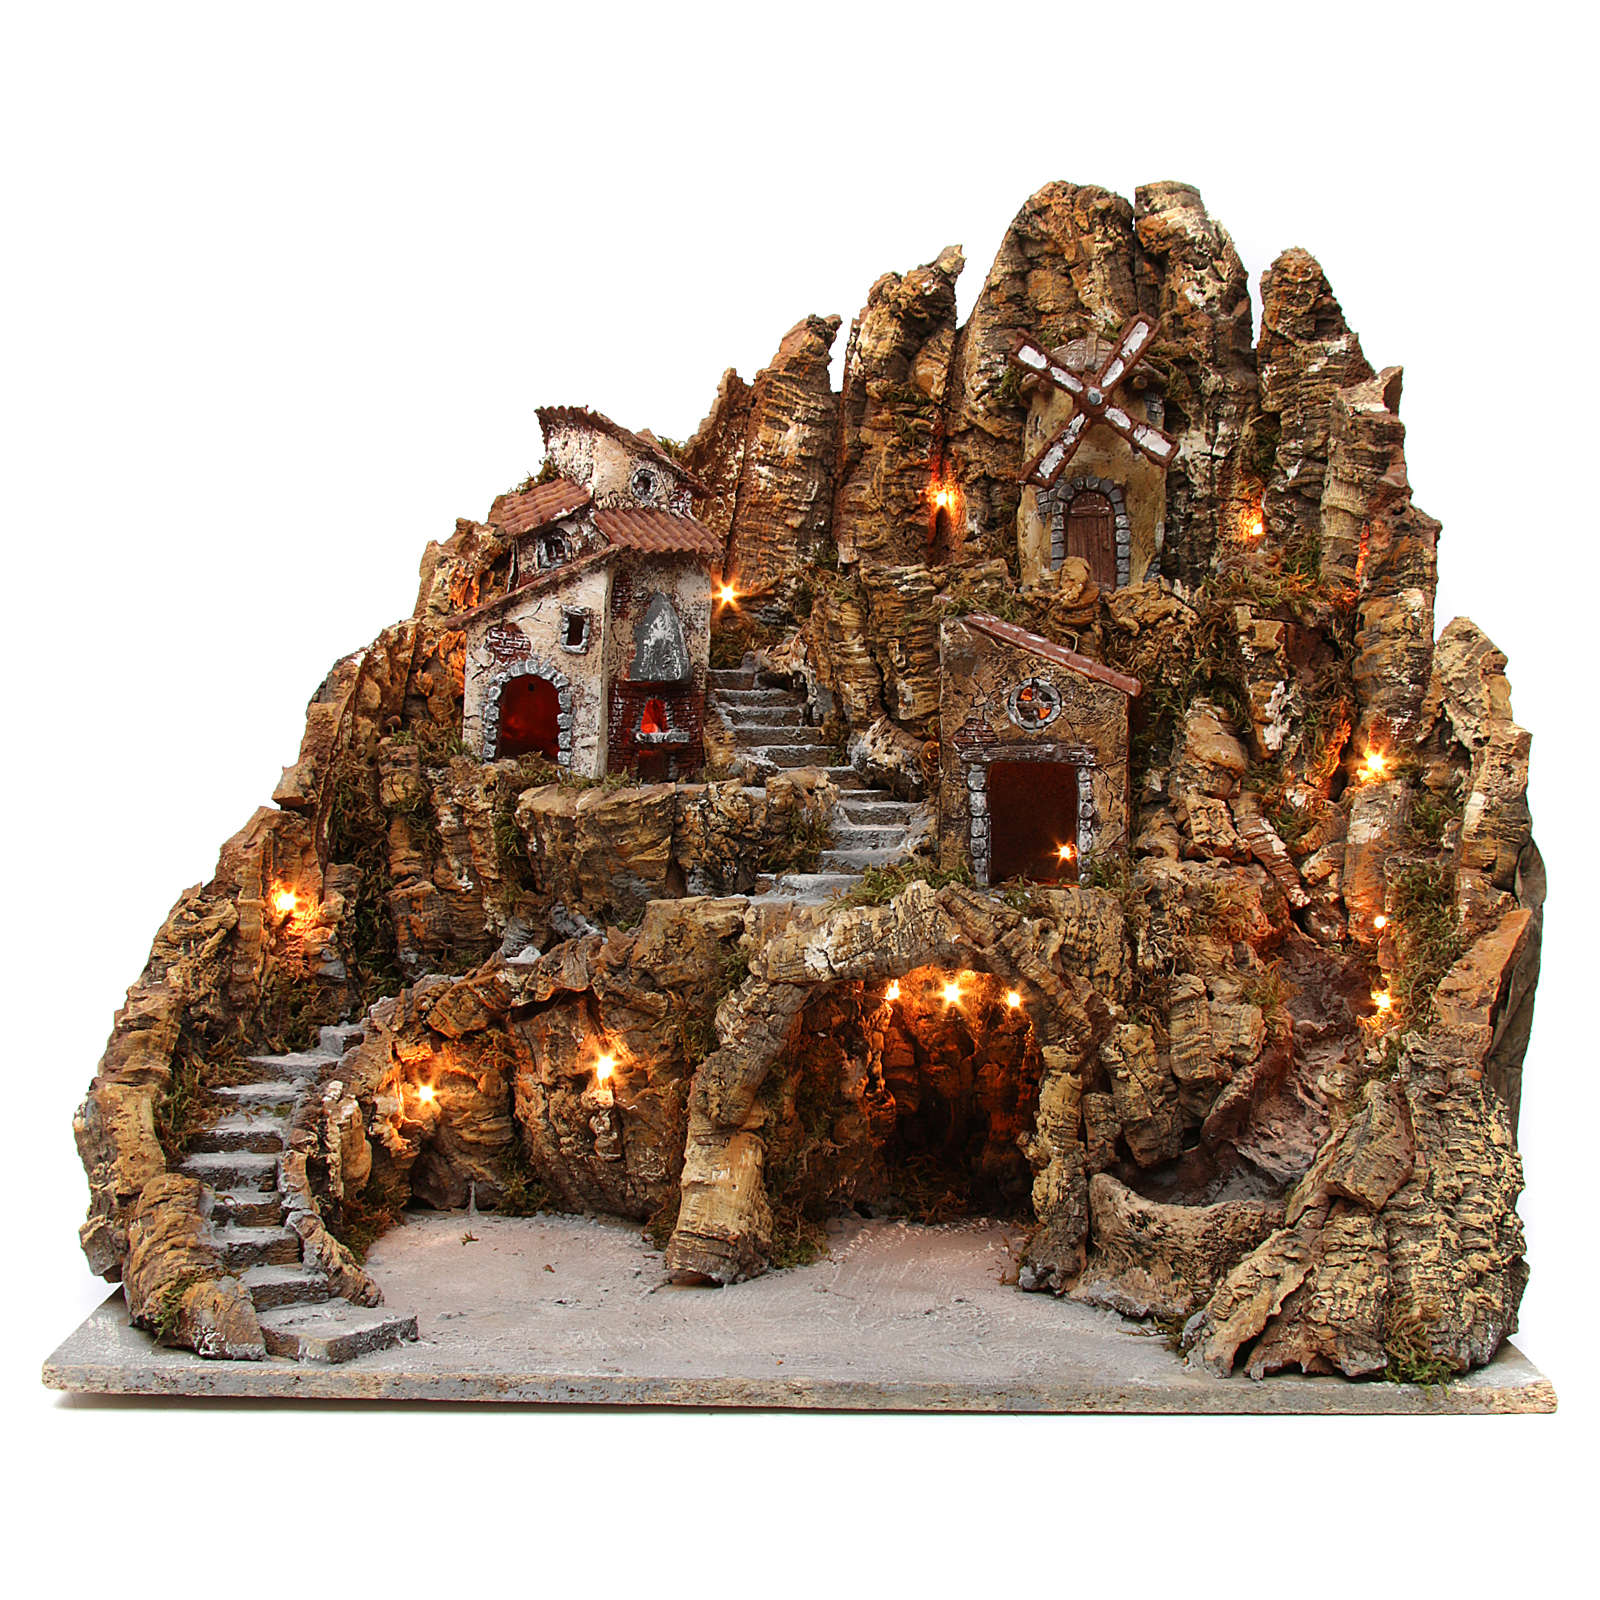 Nativity scene setting with lights, mill, stream and oven 60x65x65, Neapolitan style 4